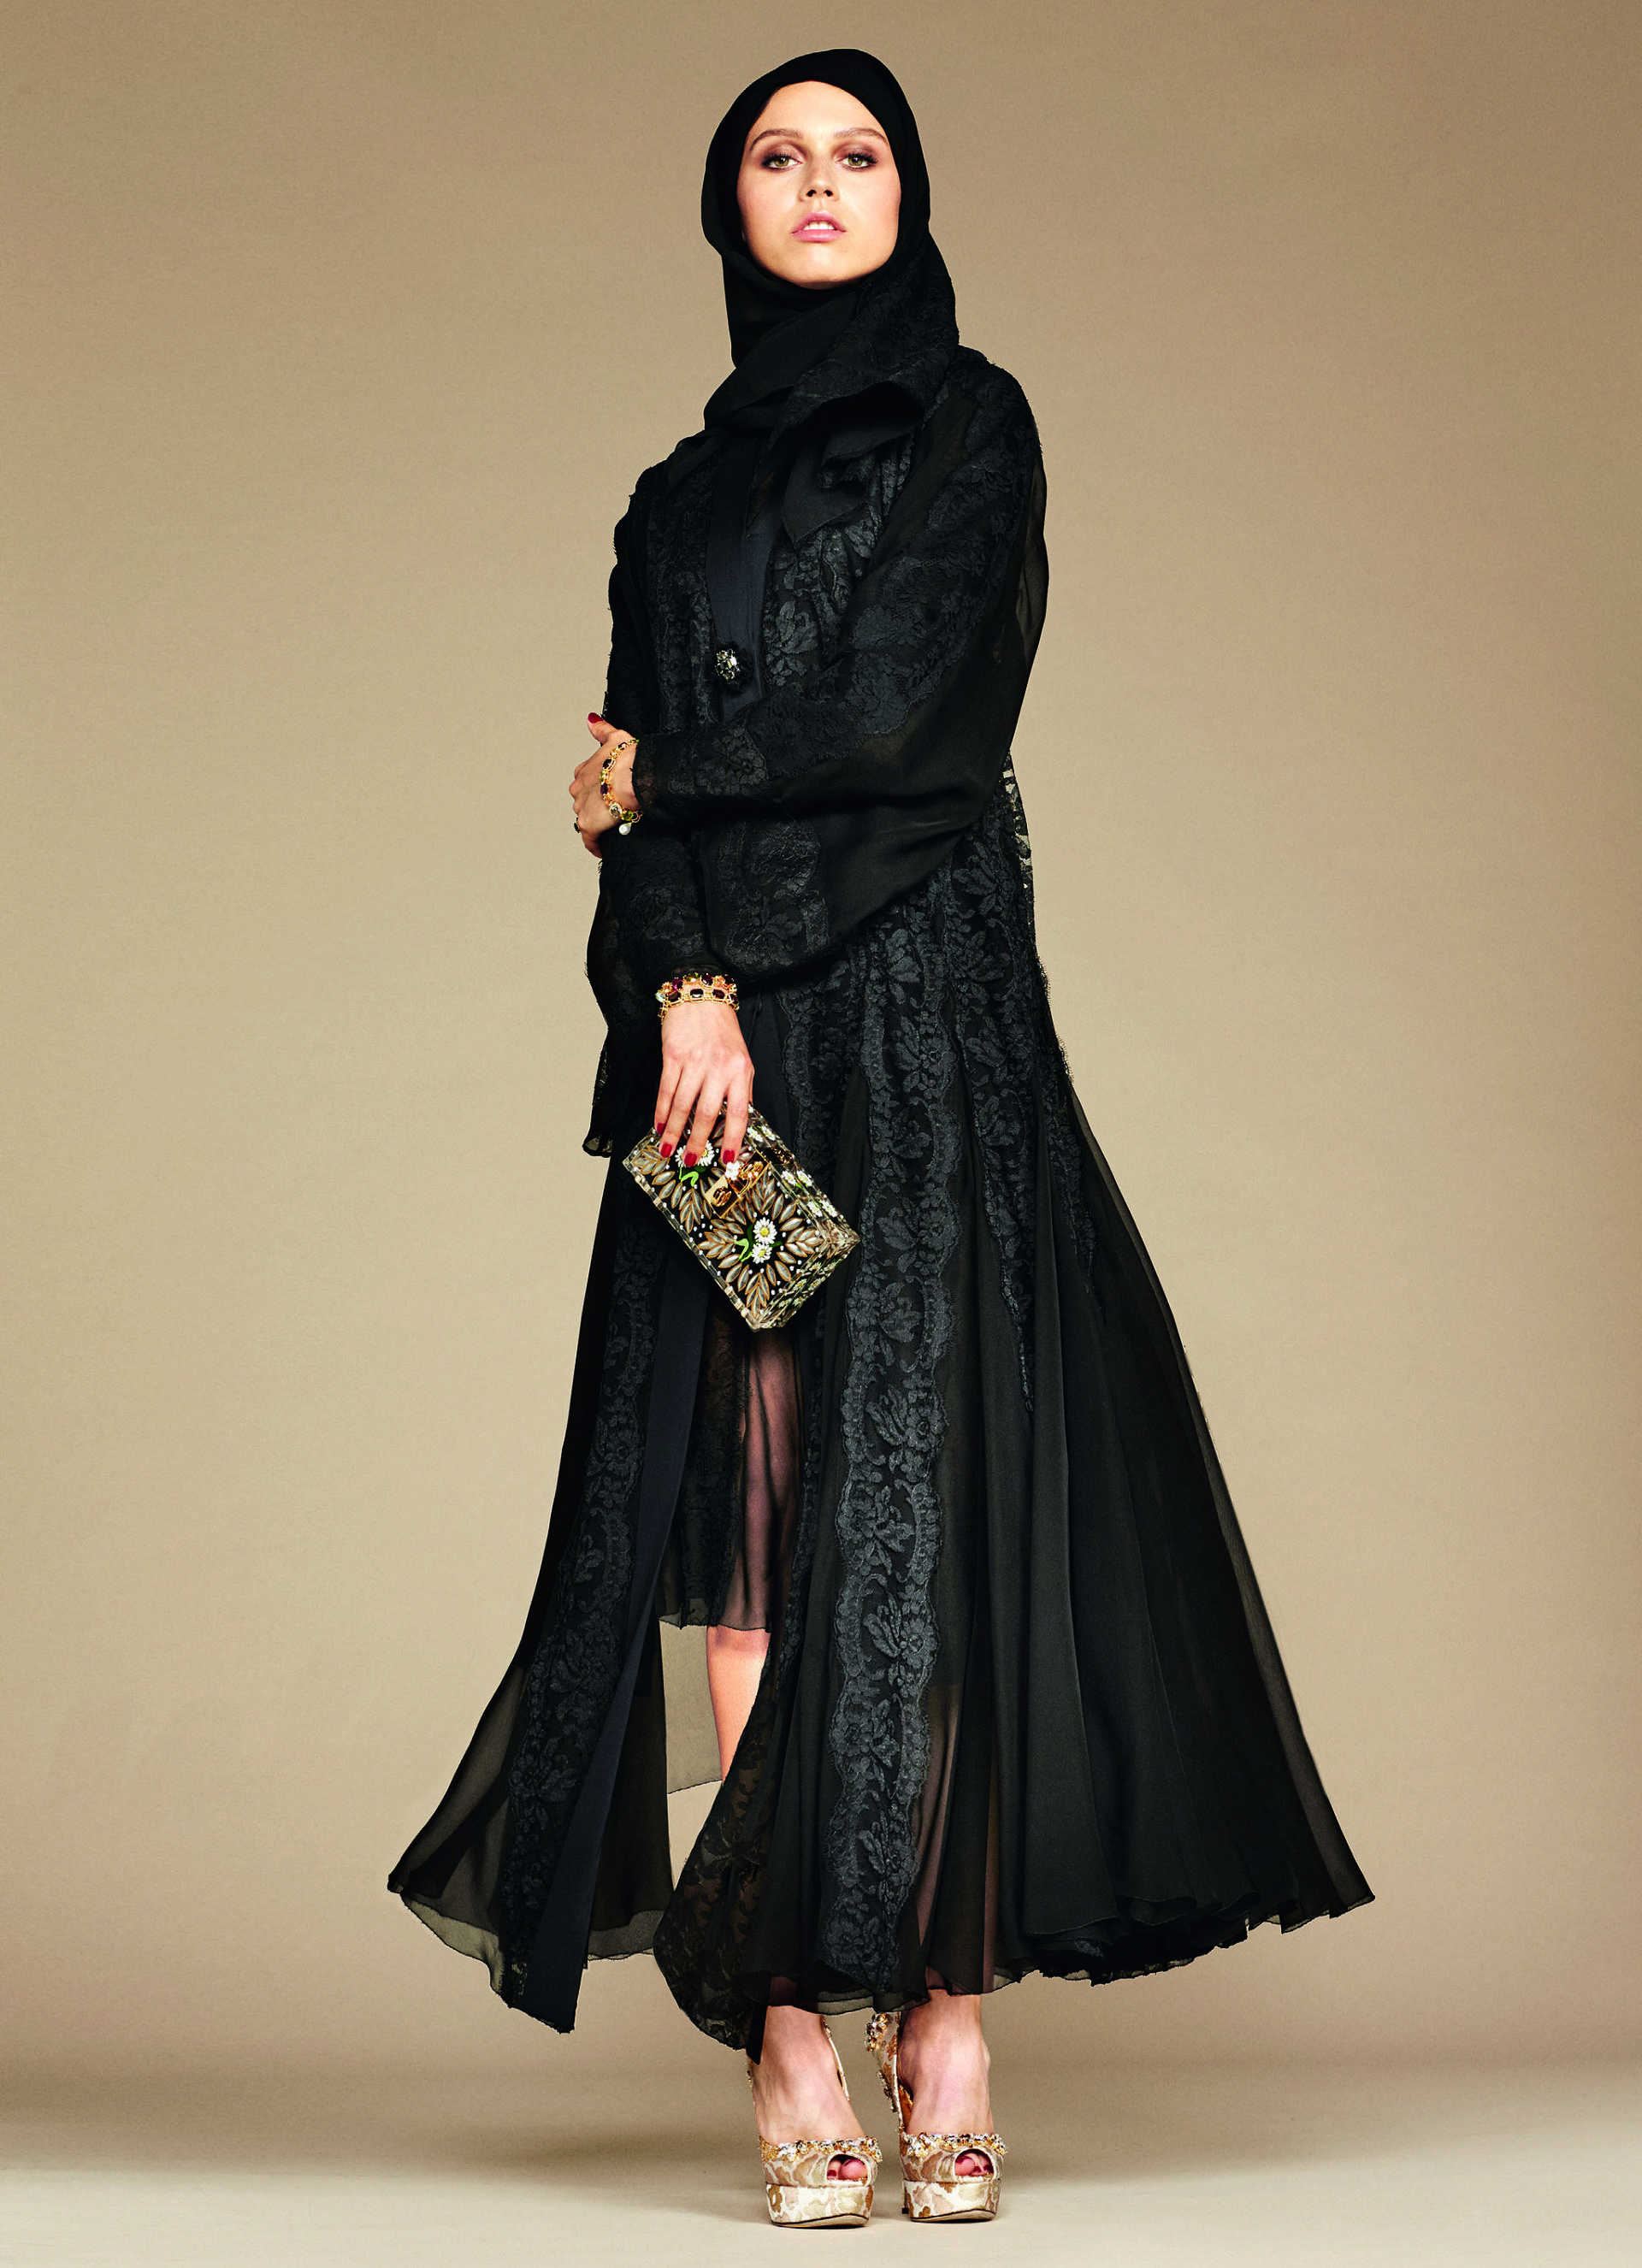 Over_Exposed_Dolce-Gabbana-Hijab-Abaya-Collection7